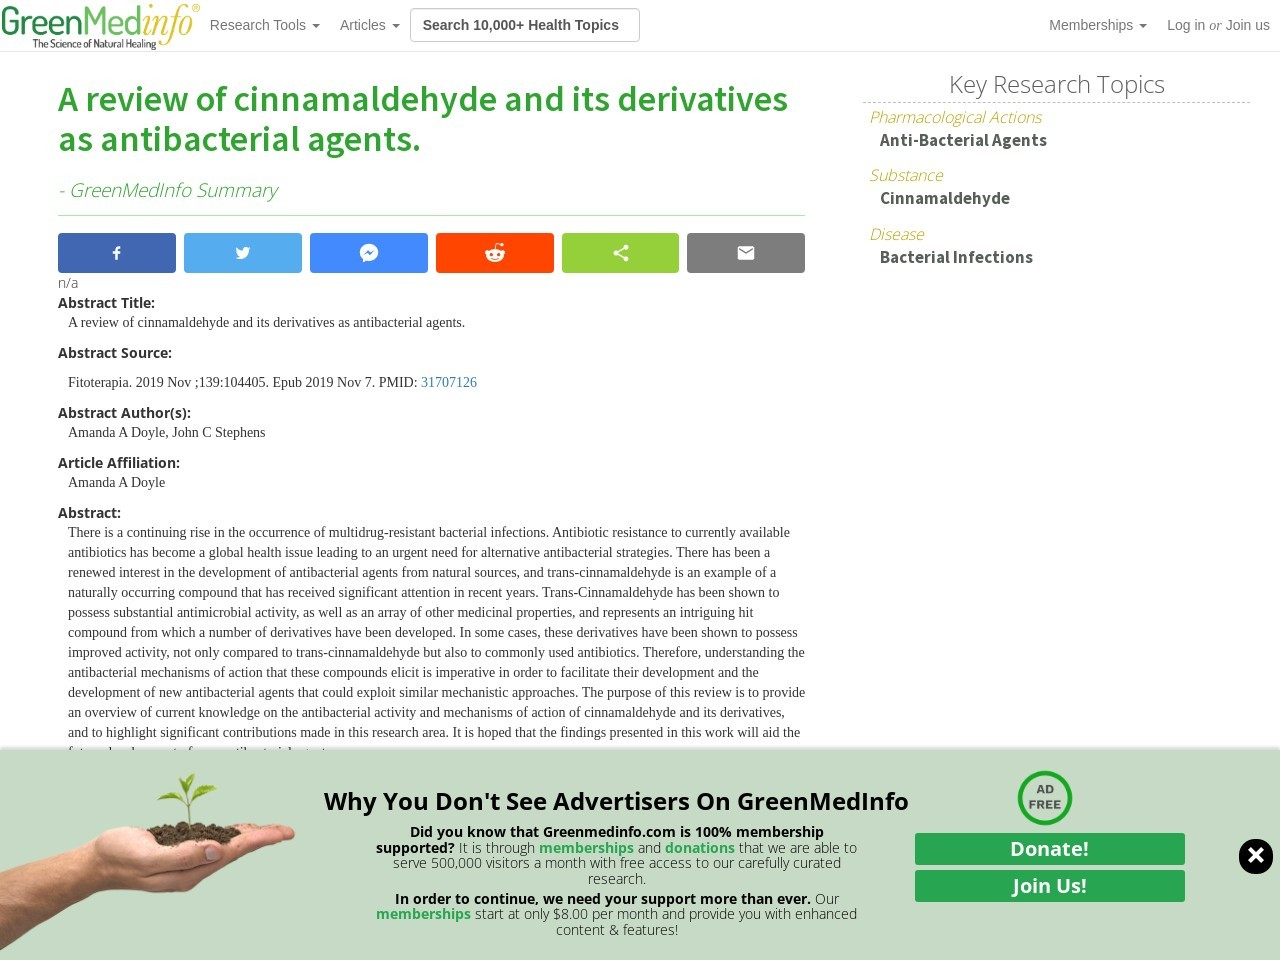 A review of cinnamaldehyde and its derivatives as antibacterial agents.